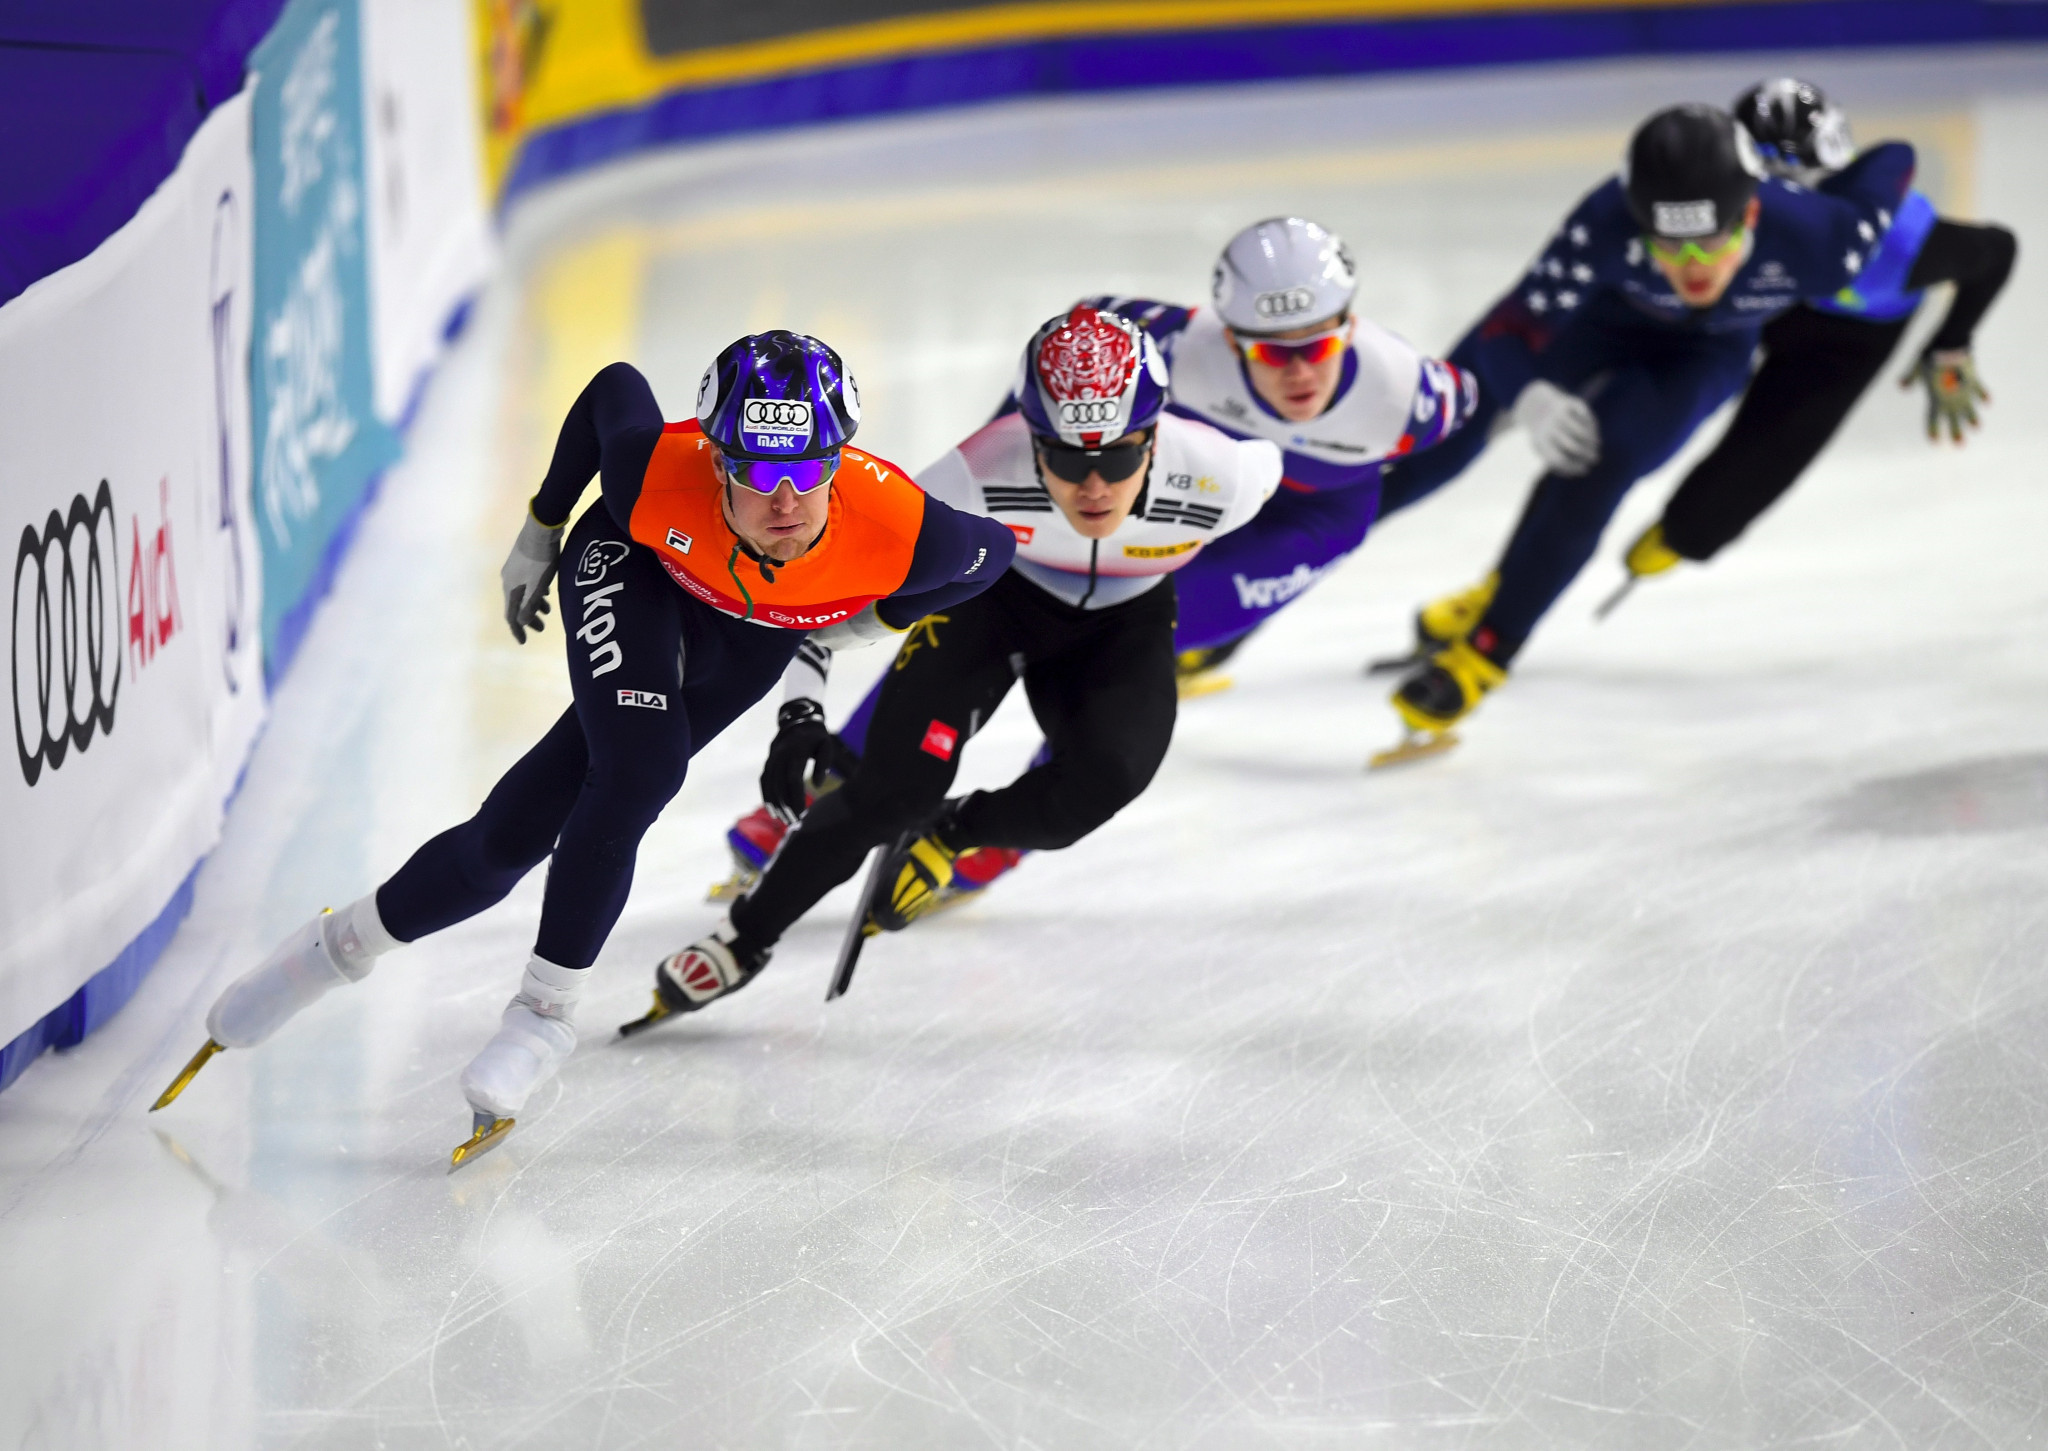 The World Short Track Speed Skating Championships in Seoul have been cancelled due to the coronavirus outbreak ©Getty Images